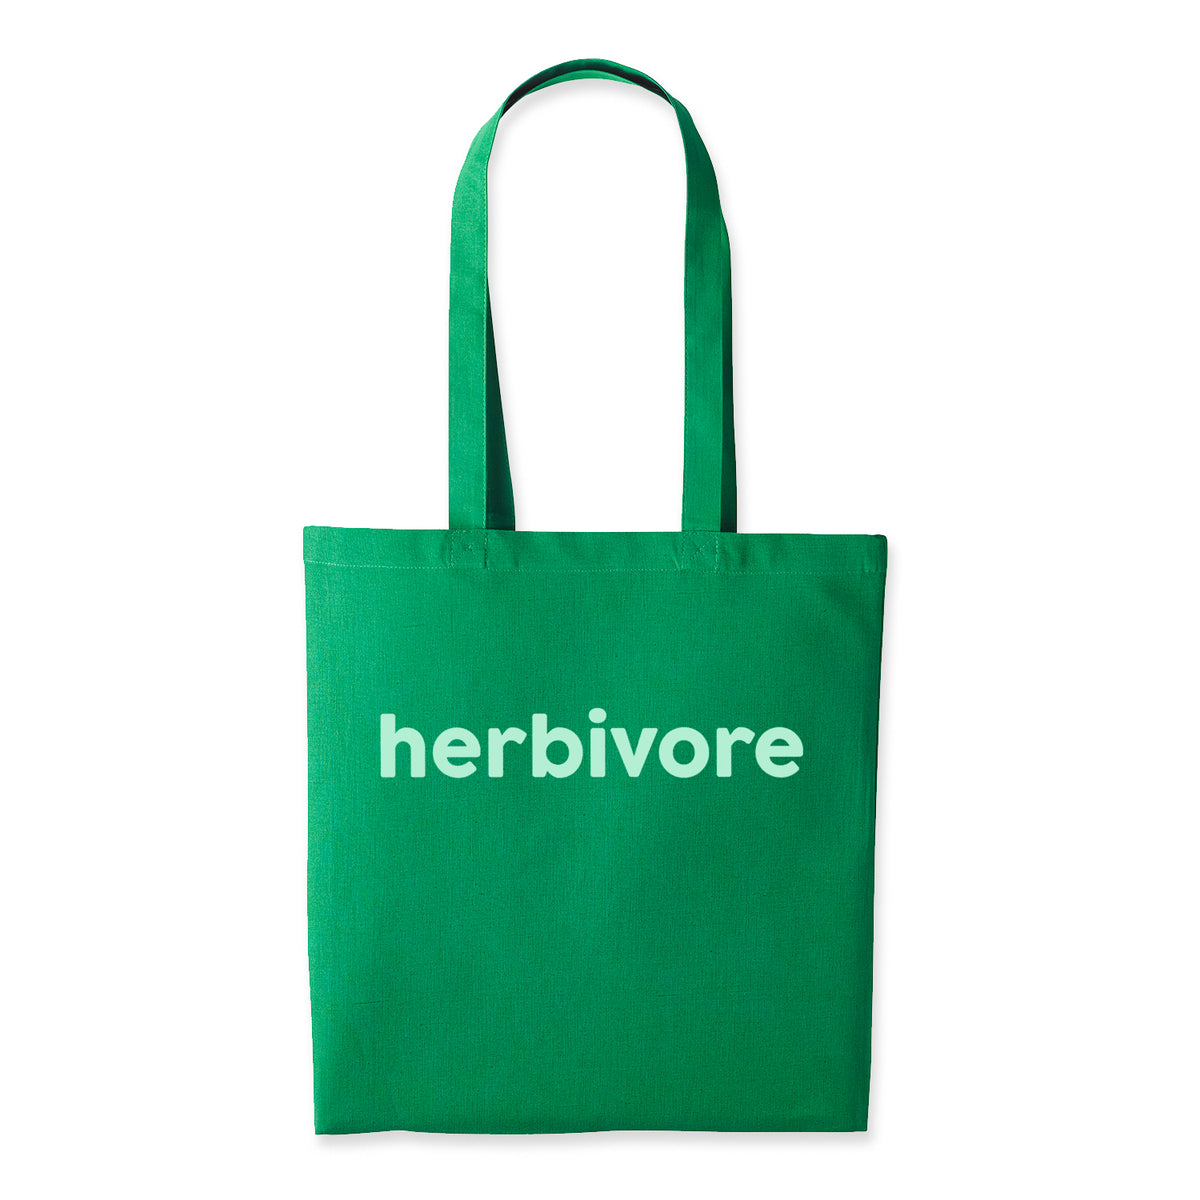 Herbivore Screen Printed Cotton Tote Bag